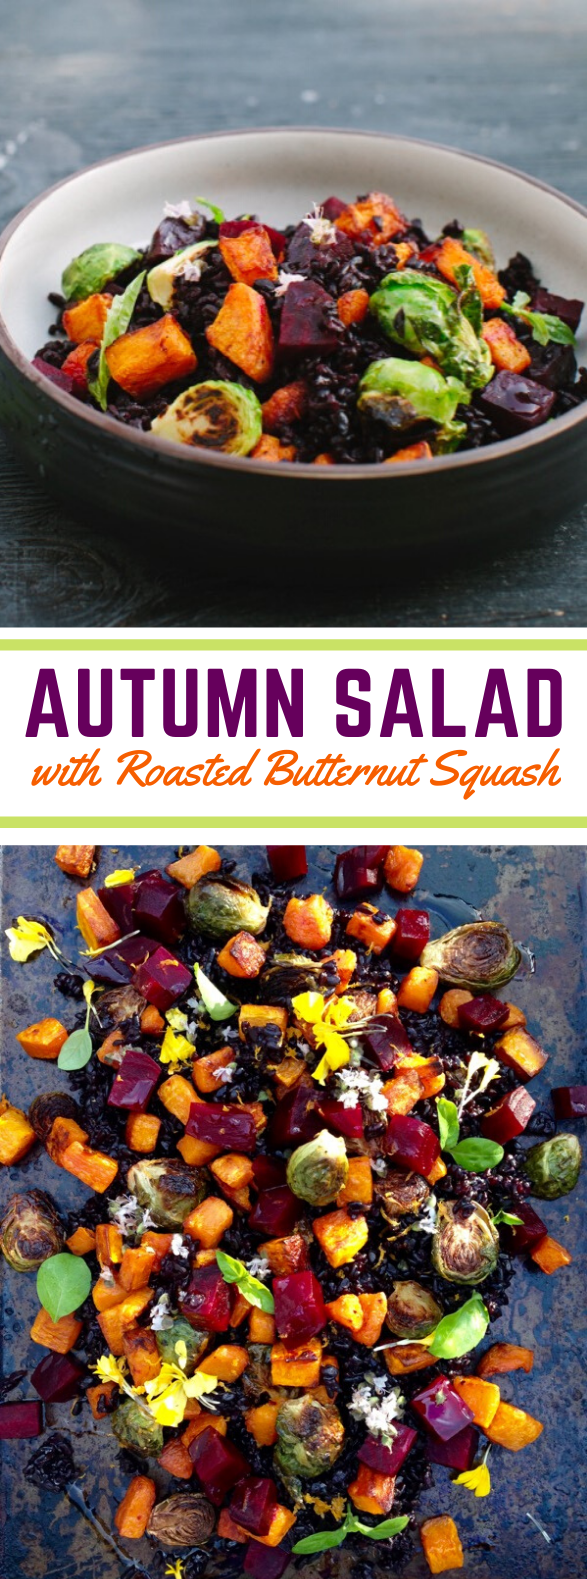 Autumn Salad Recipe with Roasted Butternut Squash #vegetarian #veggies